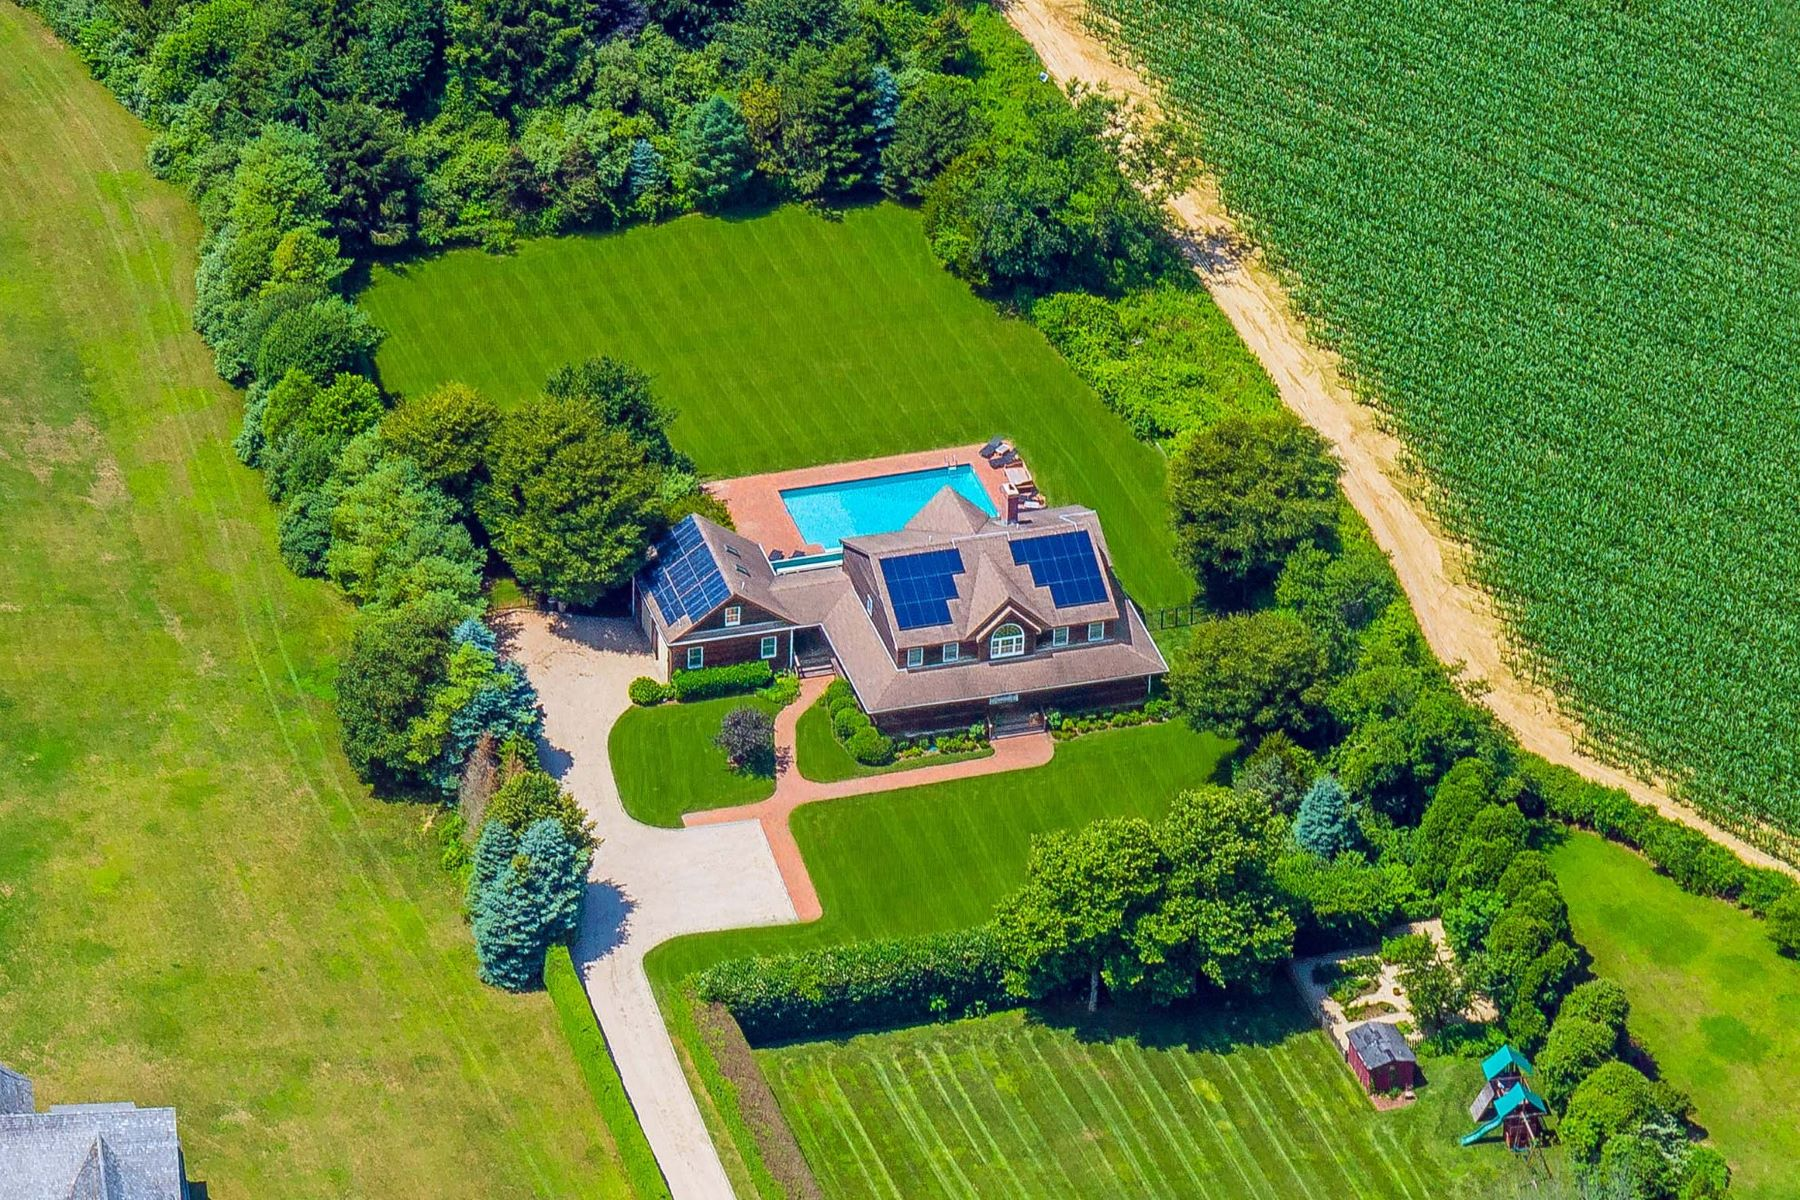 Single Family Homes for Sale at Rosè and Sunsets in Sagaponack 36 Sagg Road Sagaponack, New York 11962 United States